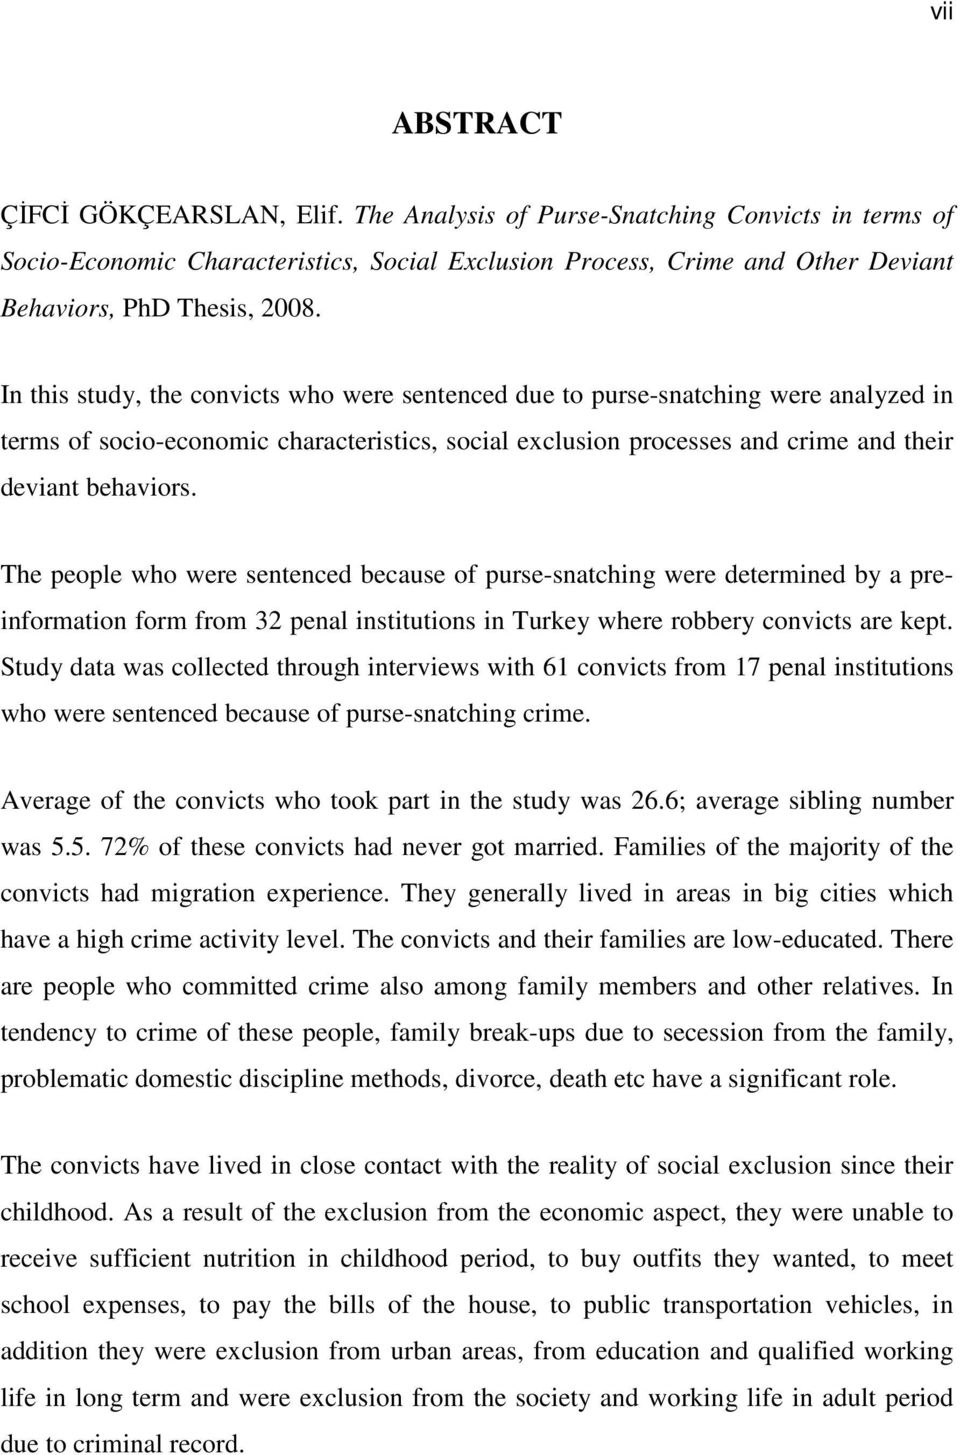 In this study, the convicts who were sentenced due to purse-snatching were analyzed in terms of socio-economic characteristics, social exclusion processes and crime and their deviant behaviors.